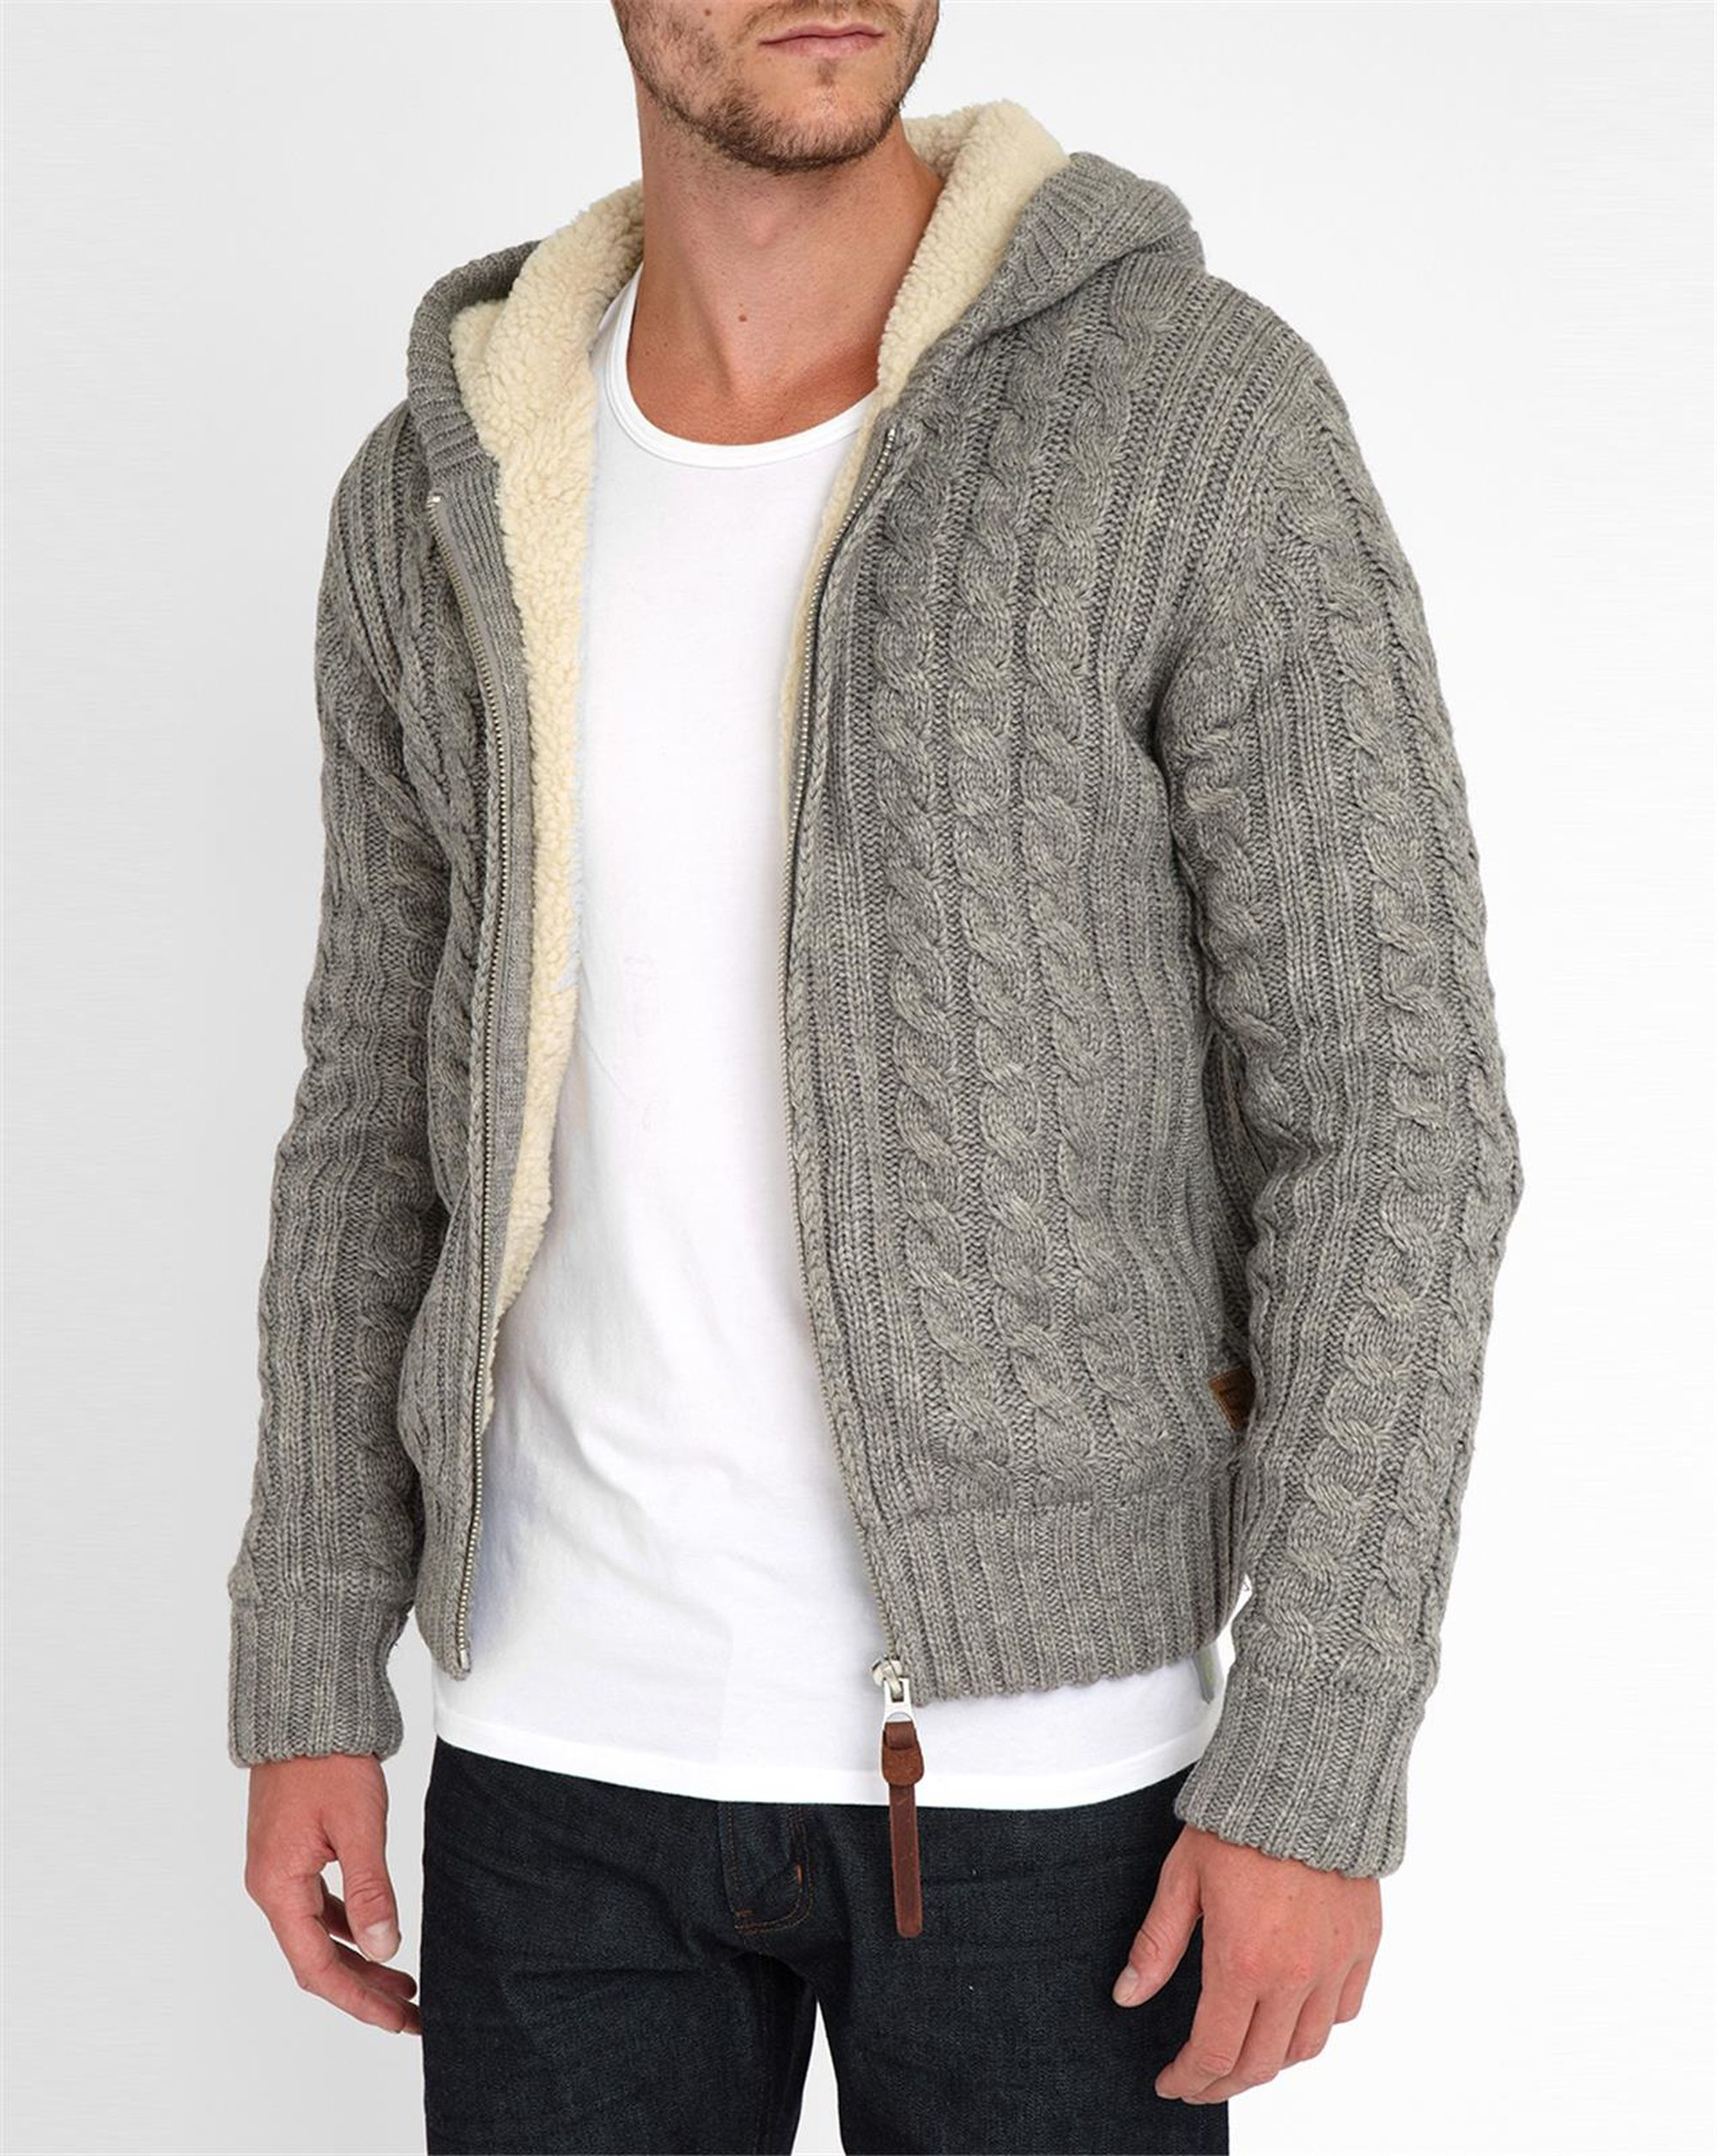 Sherpa Lined Wool Sweater - Cashmere Sweater England